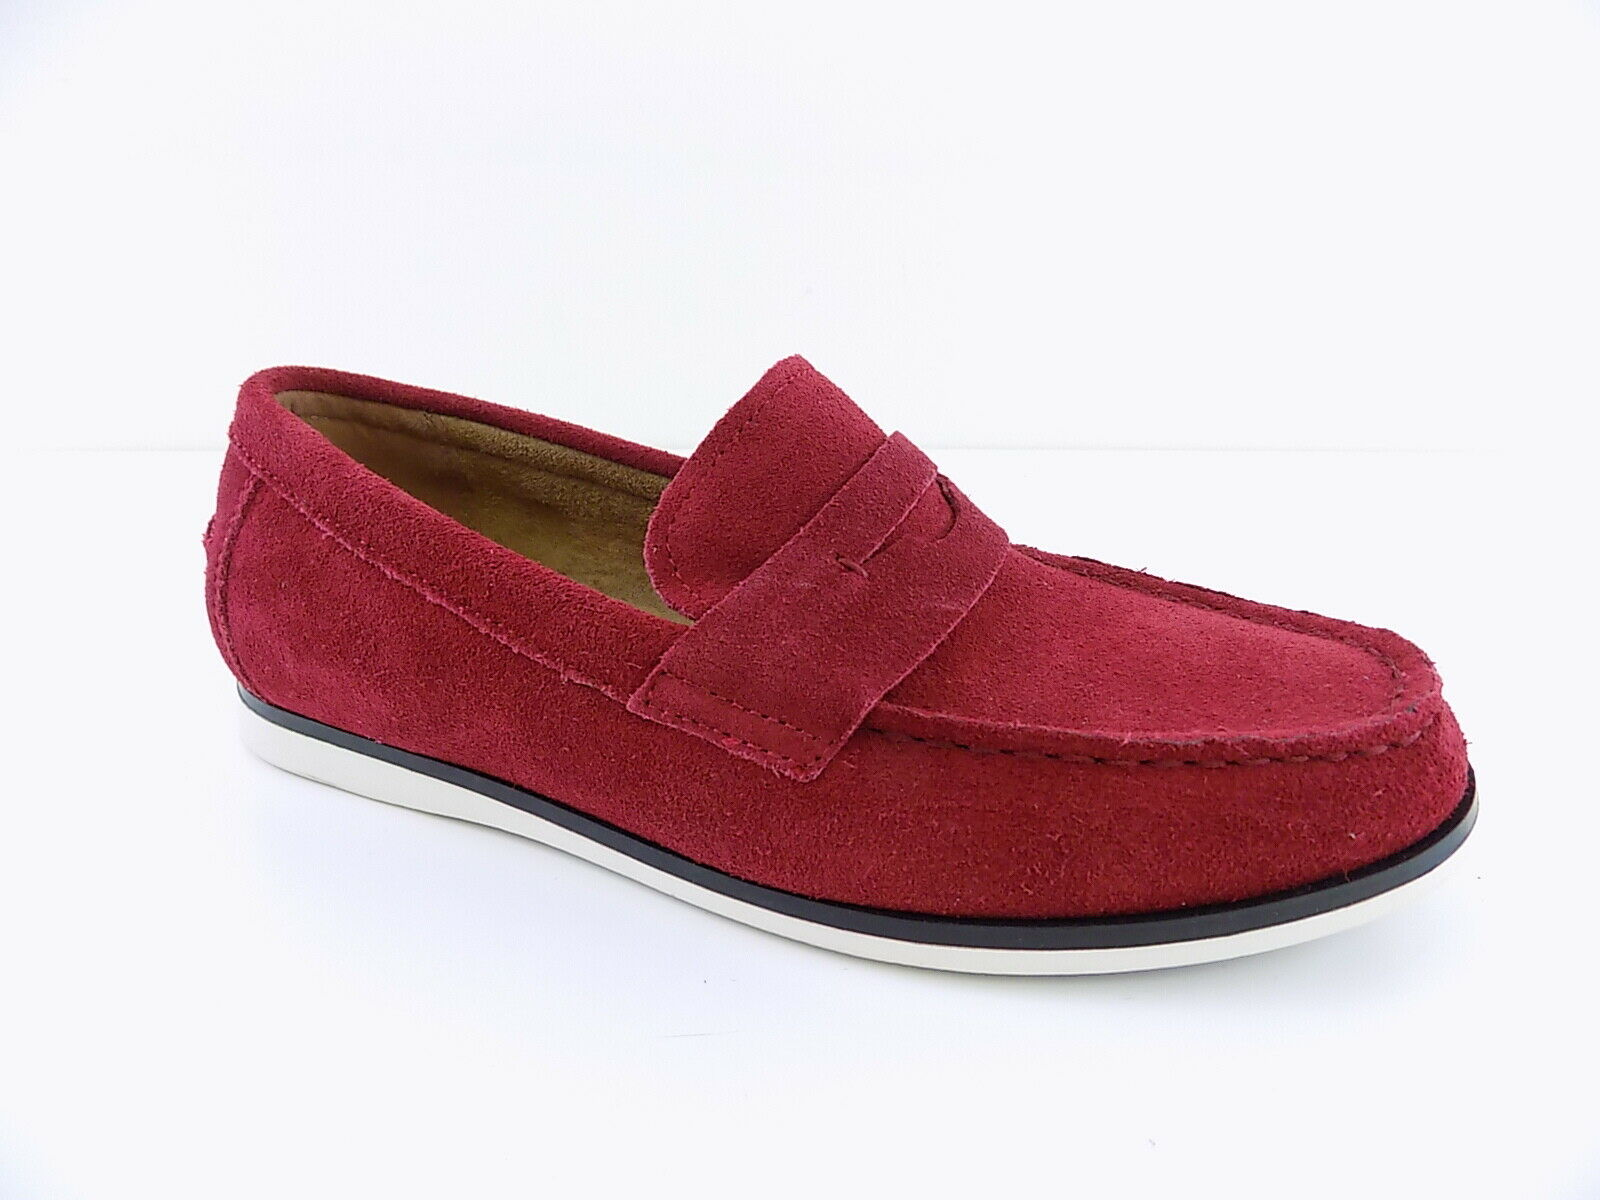 Alfani   SAWYER Red MEN Size 9M Loafers & Slip Ons CLASSIC SUEDE shoes D01